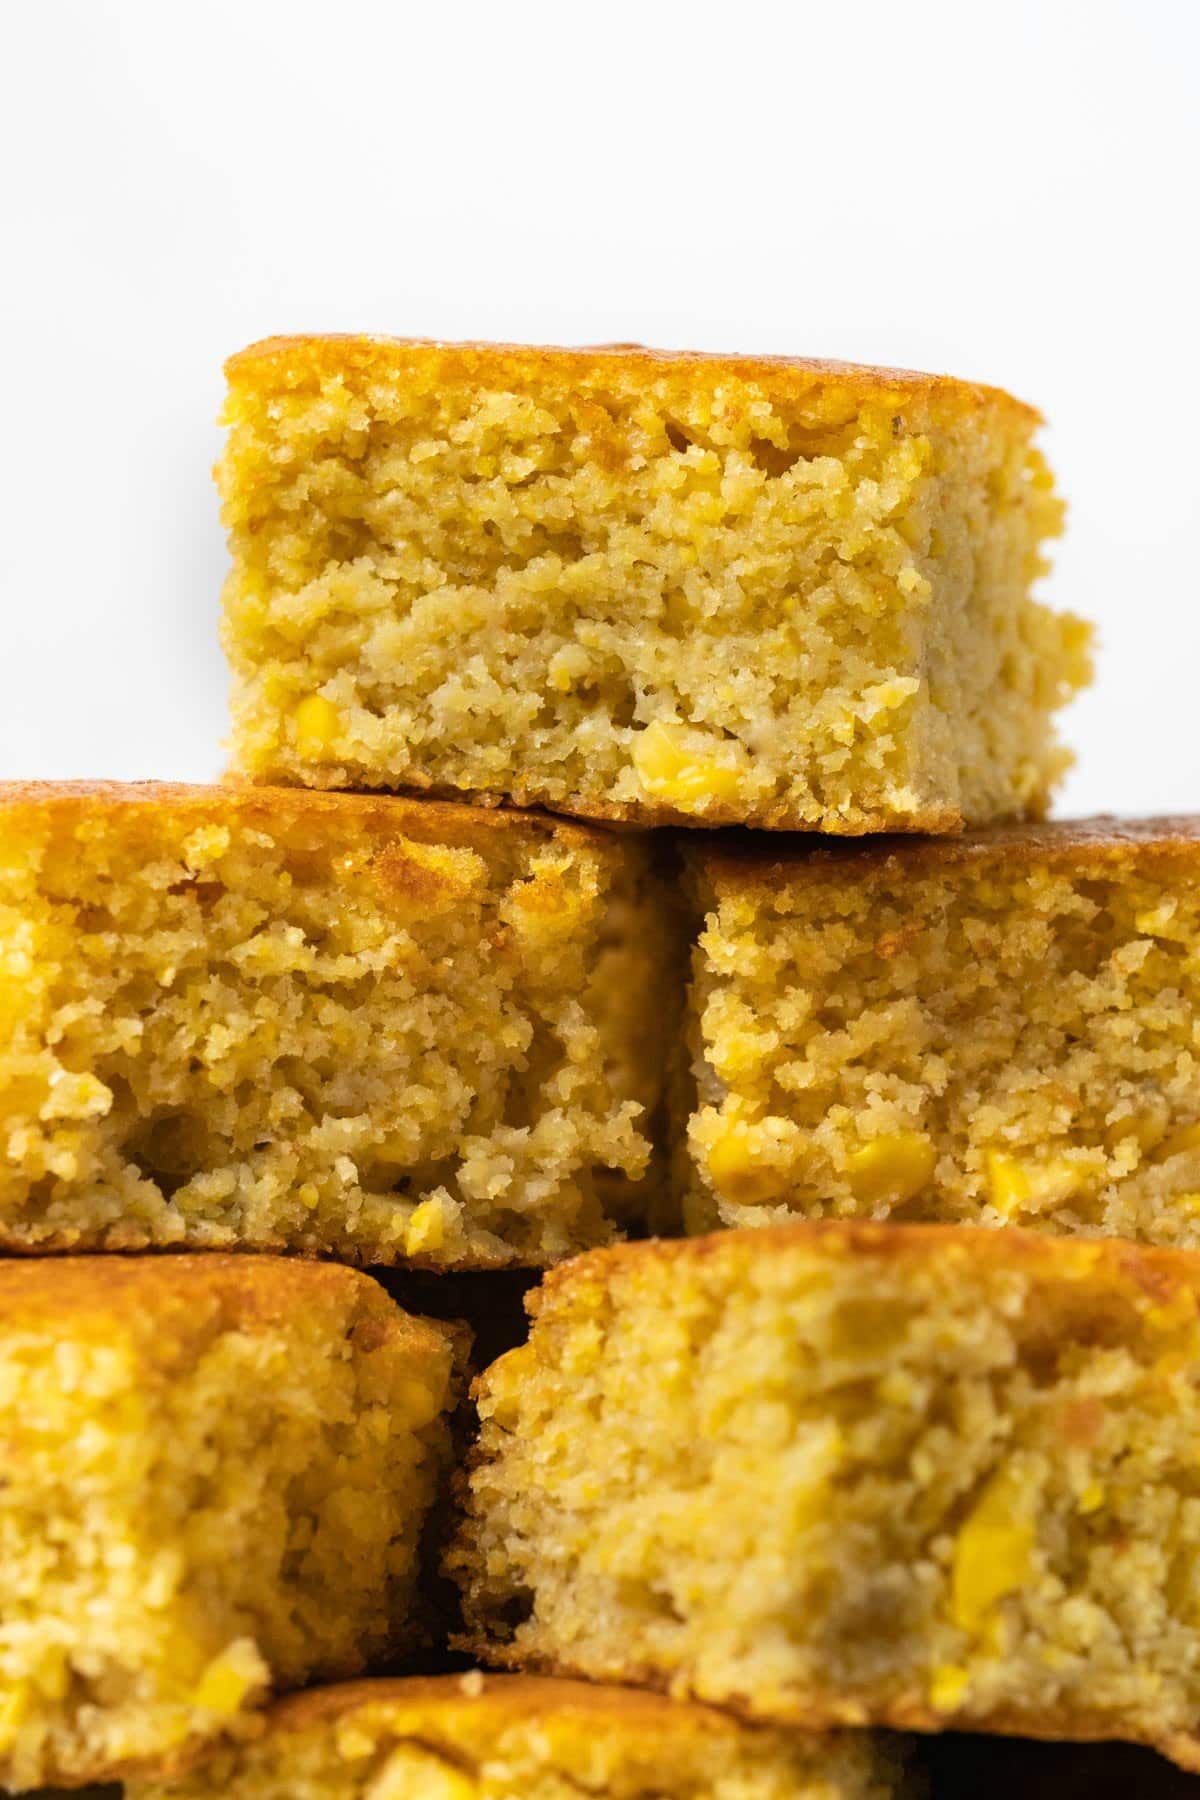 Squares of cornbread stacked up on top of each other.